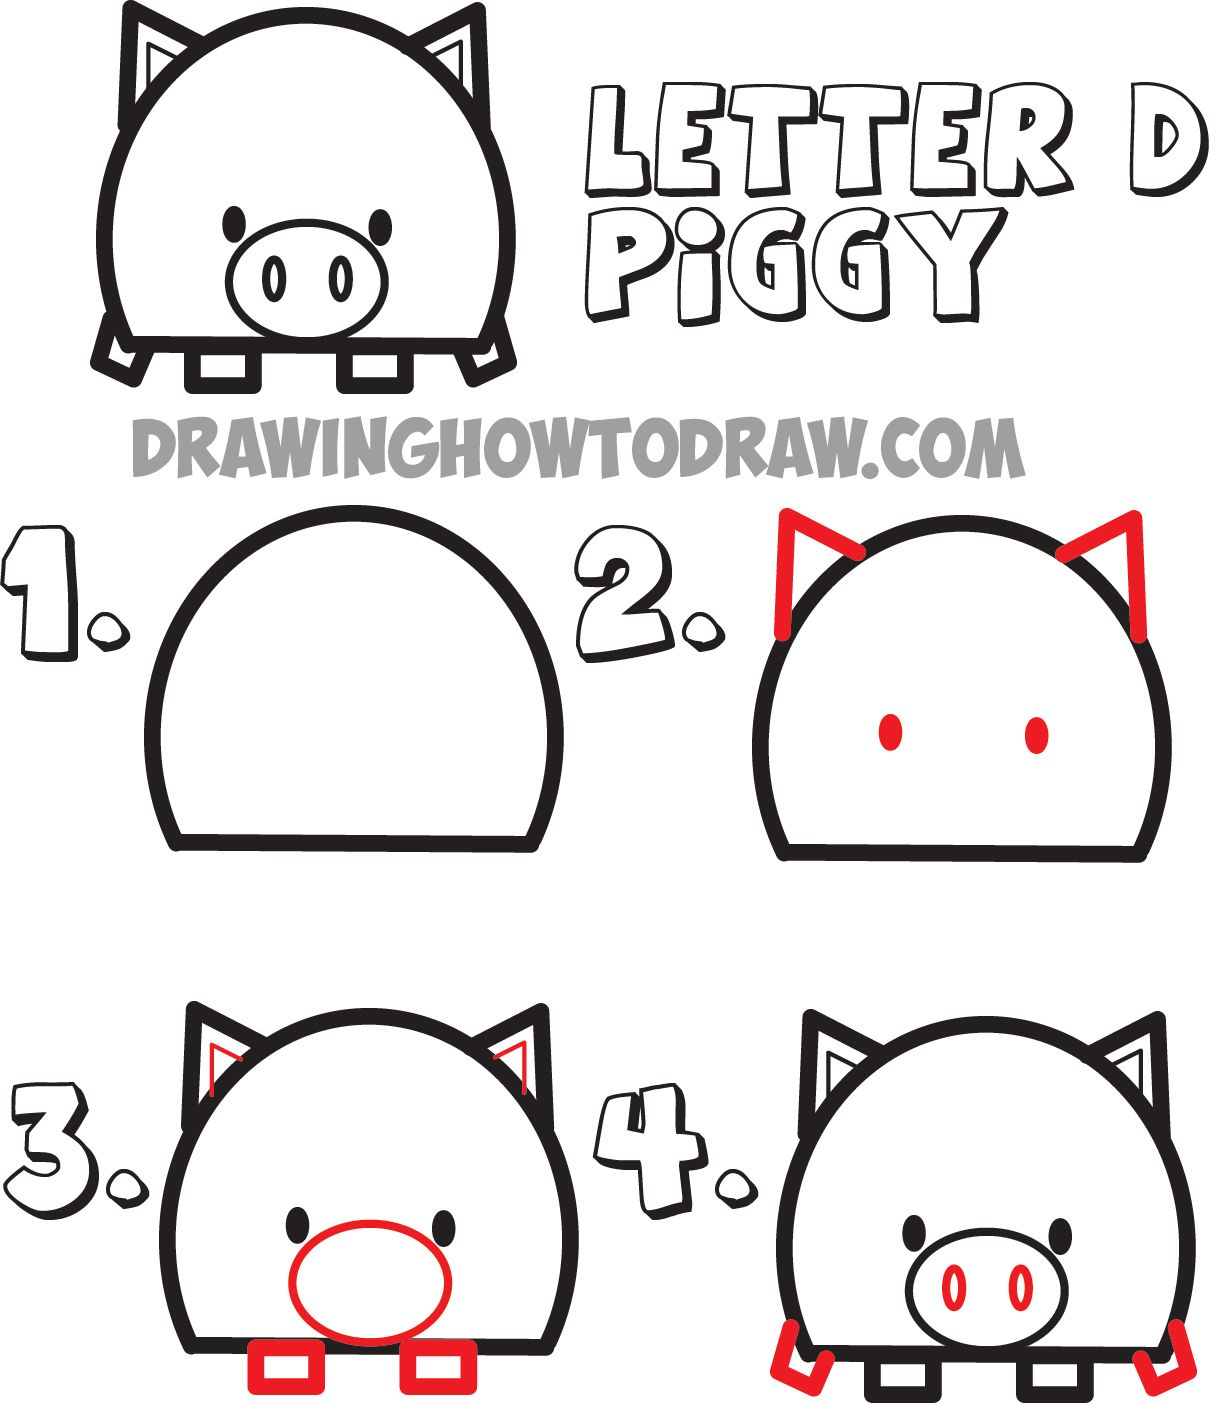 how to draw cartoon pigs from the letter D shape Drawing